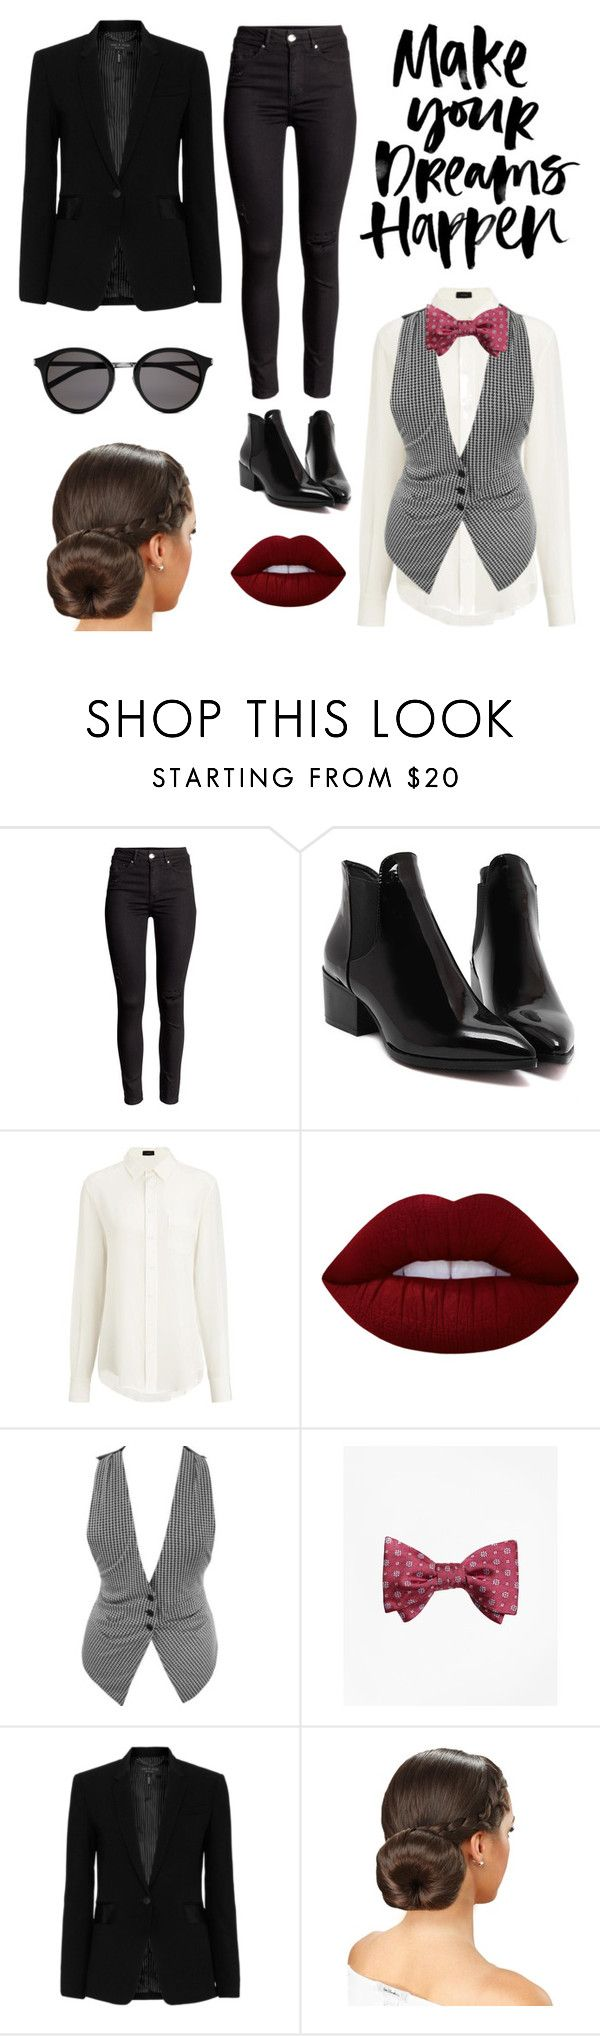 """""""Slick bowtie work outfit"""" by shop-styleloft on Polyvore featuring Joseph, Lime Crime, Brooks Brothers, rag & bone and Yves Saint Laurent"""